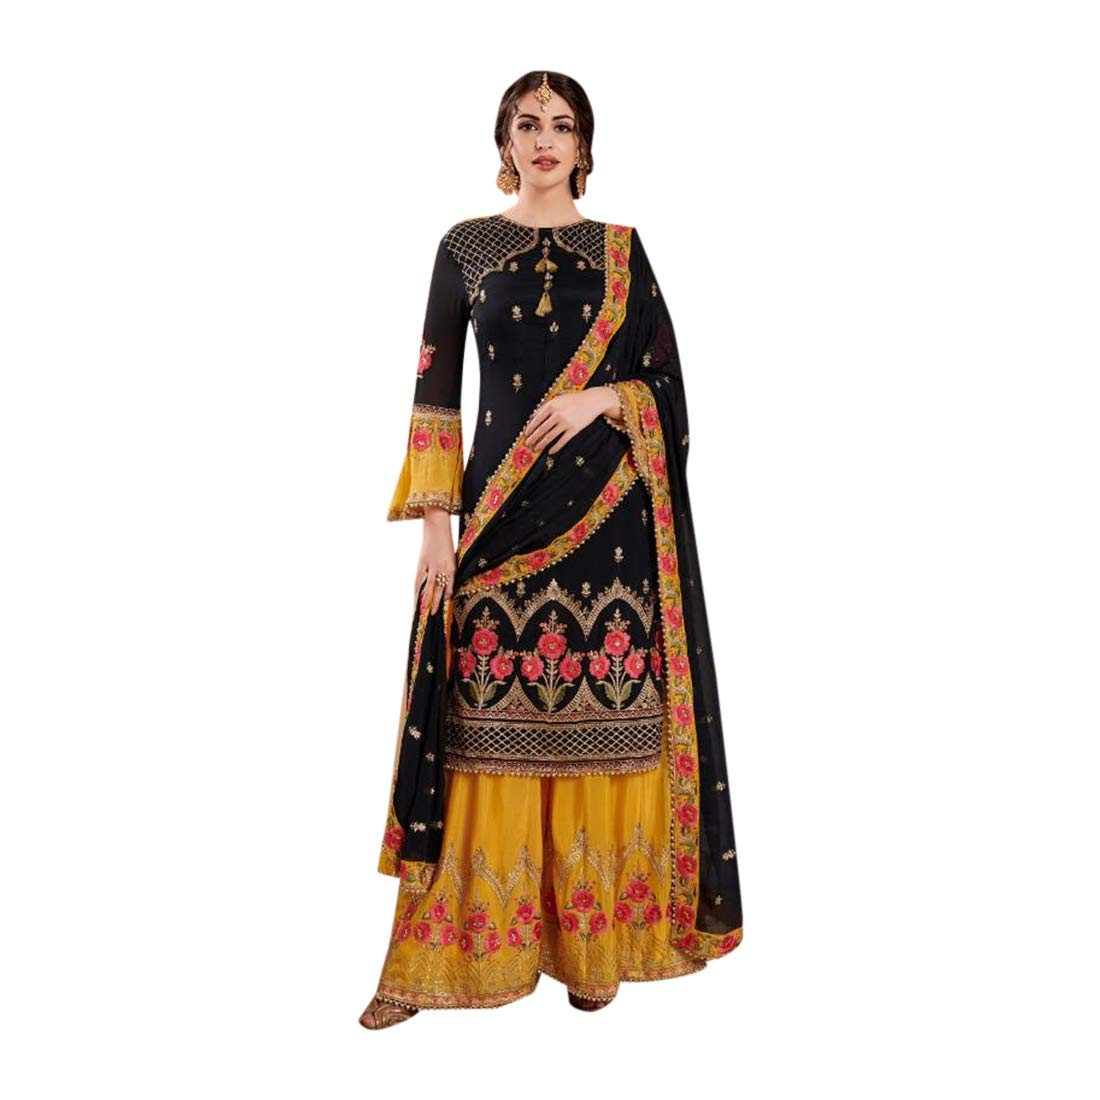 Black Yellow Indian Wedding Faux Georgette Sharara Palazzo suit for Women with Heavy Embroidery Muslim dress 7702